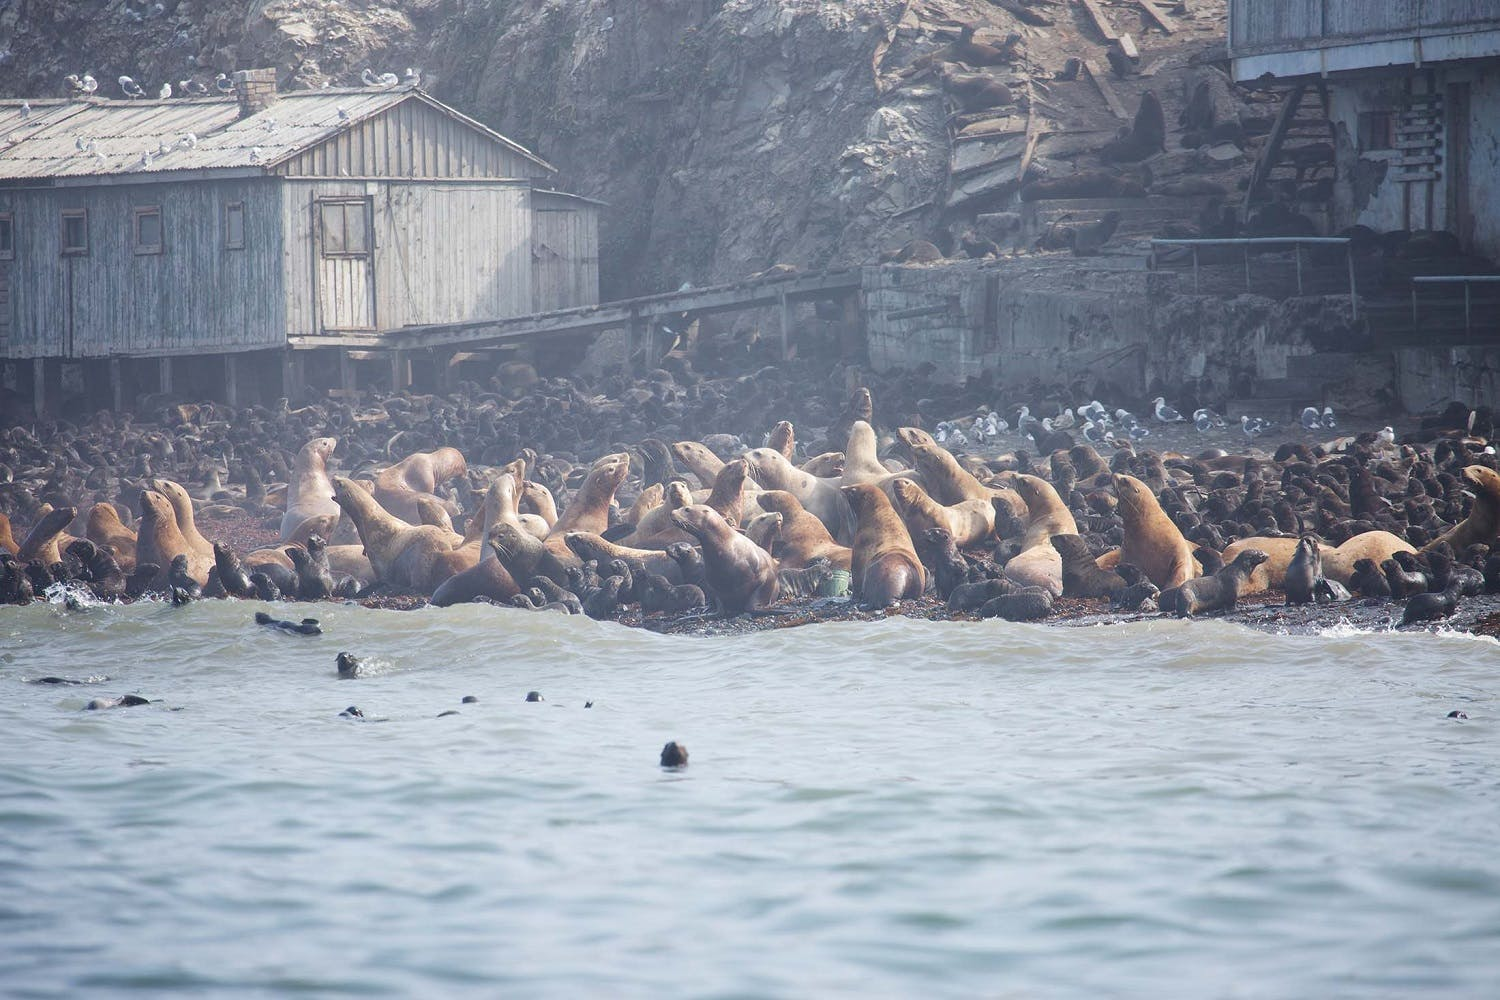 Fur seals in Tyuleniy Island in the Russian Far East